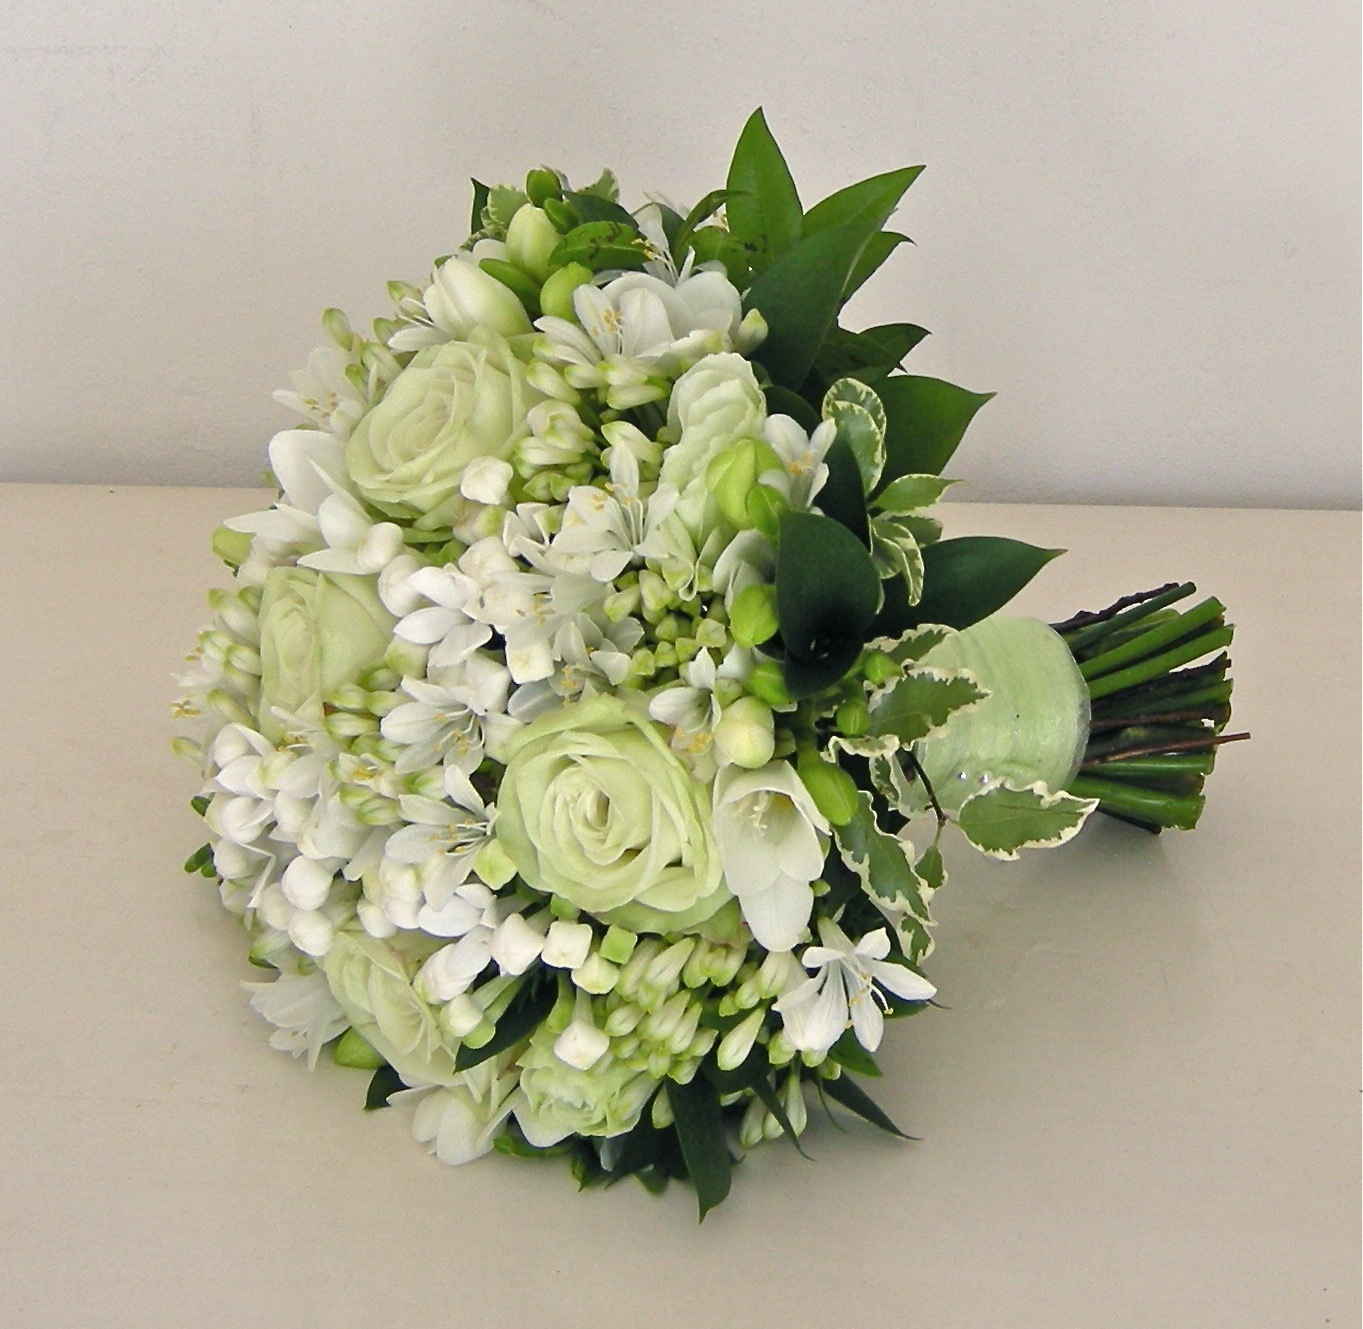 Wedding Flowers Blog: Alison's Pale Green And White